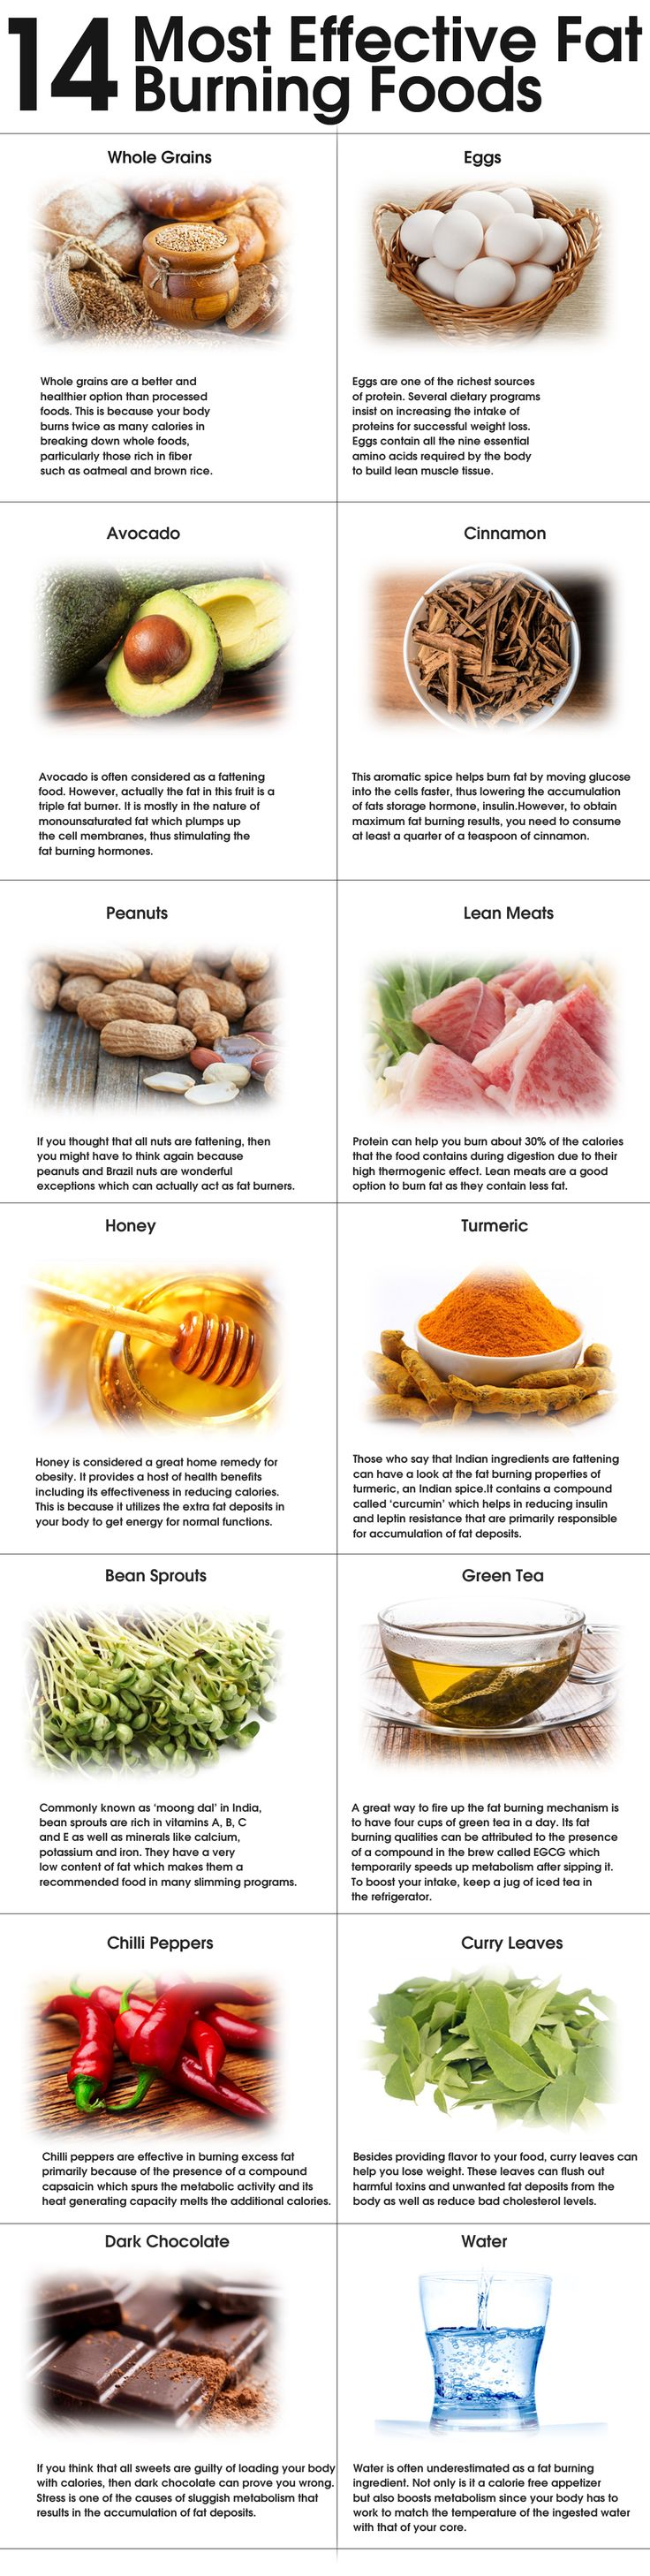 Fat Burning Foods #healthy